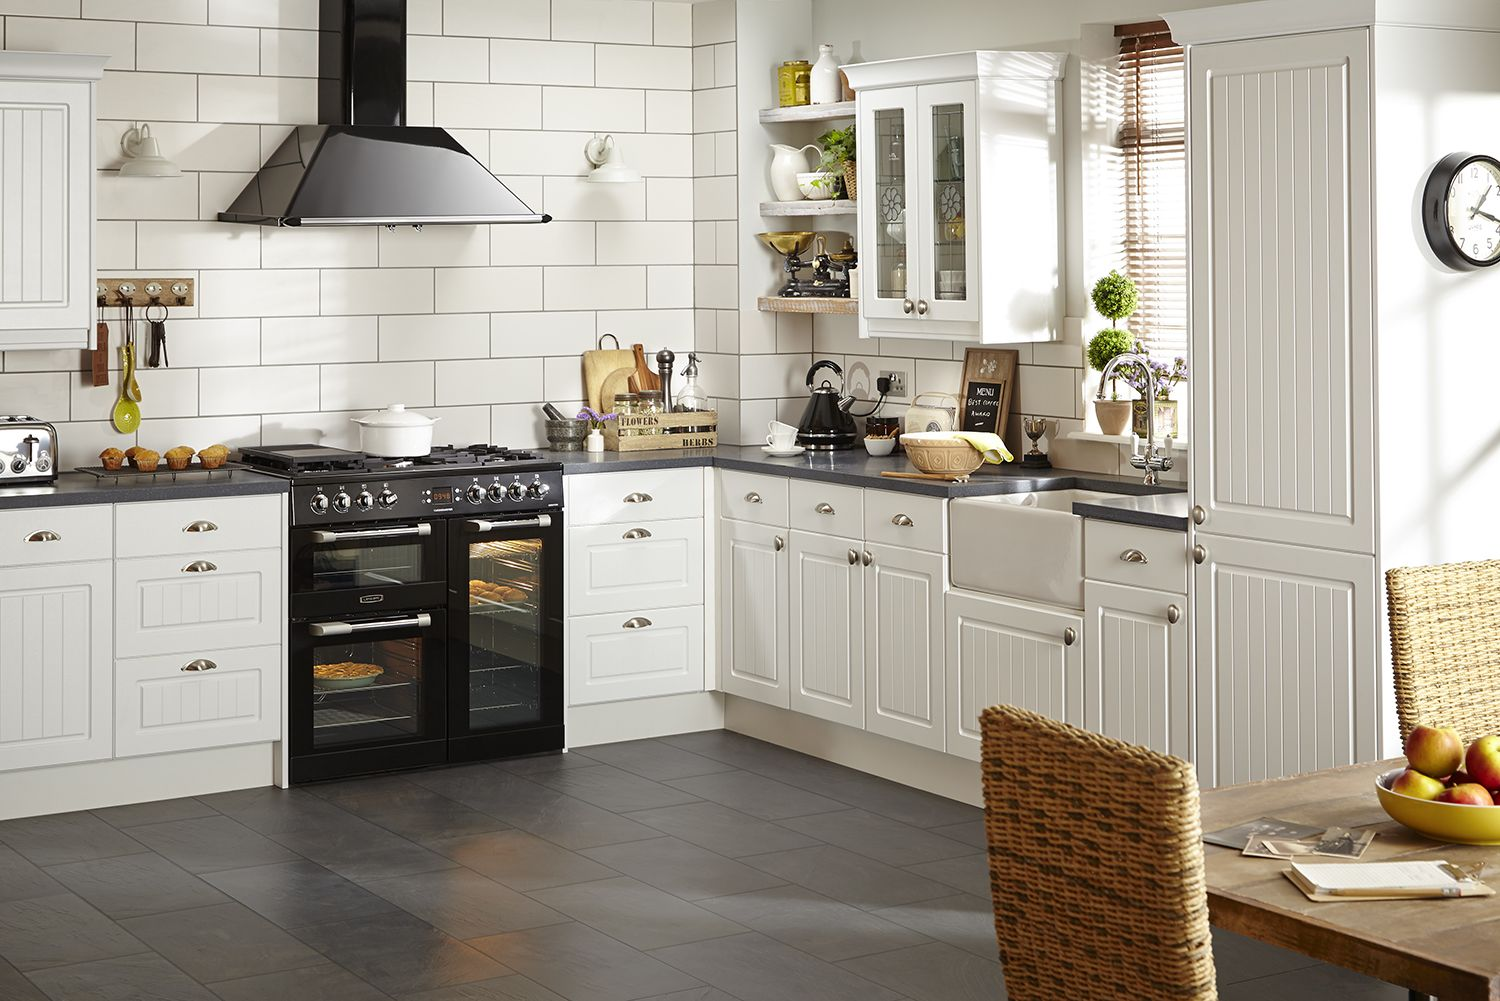 Combining bold, graphic black appliances and worktops with